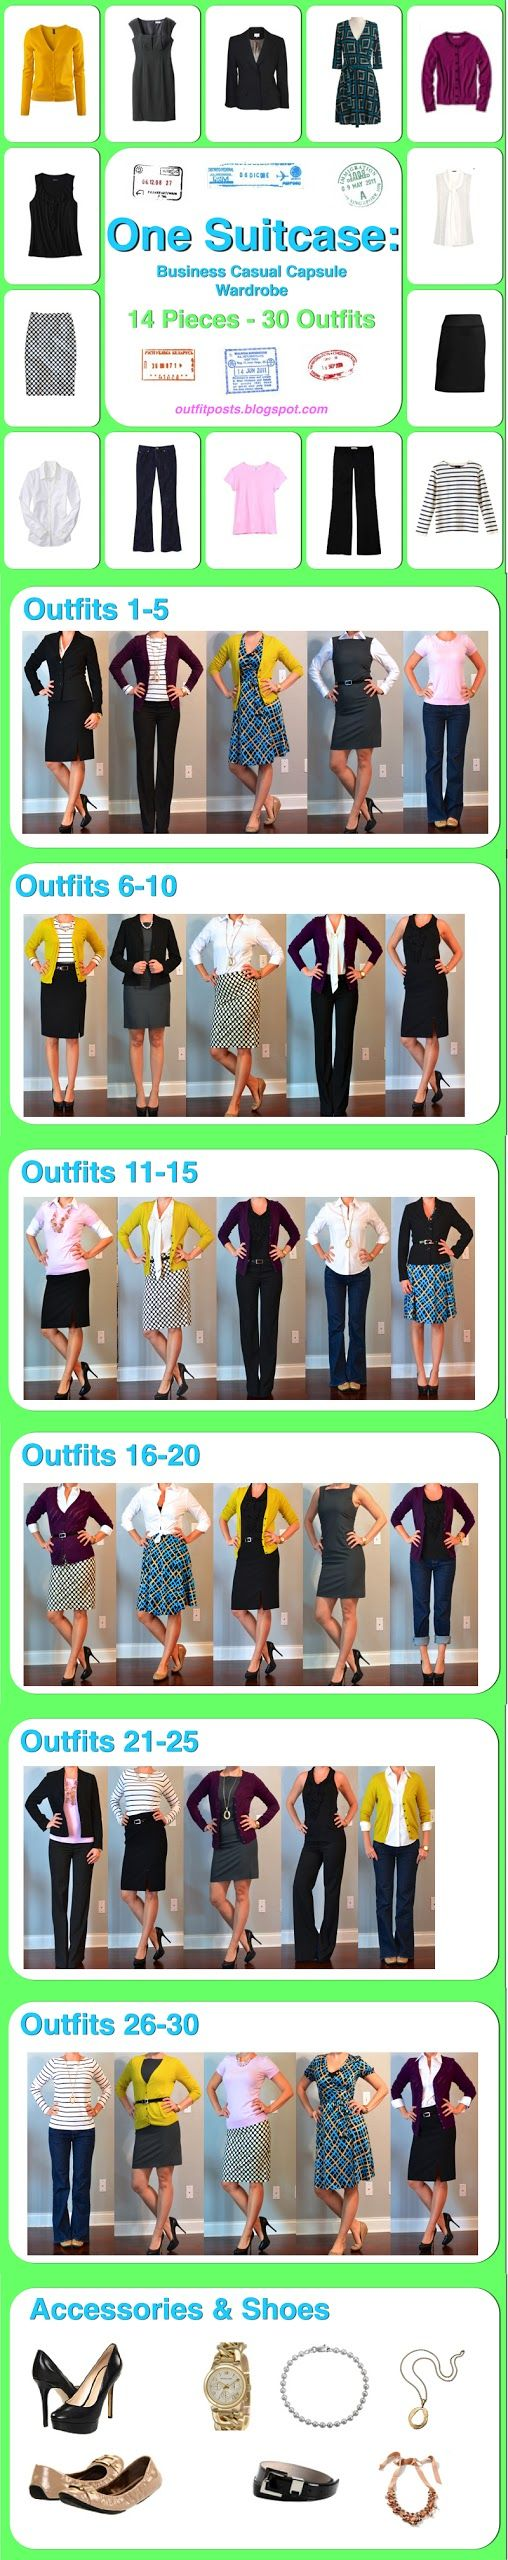 Packing for business - 14 pieces = 30 outfits || Outfit Posts: one suitcase: business casual capsule wardrobe